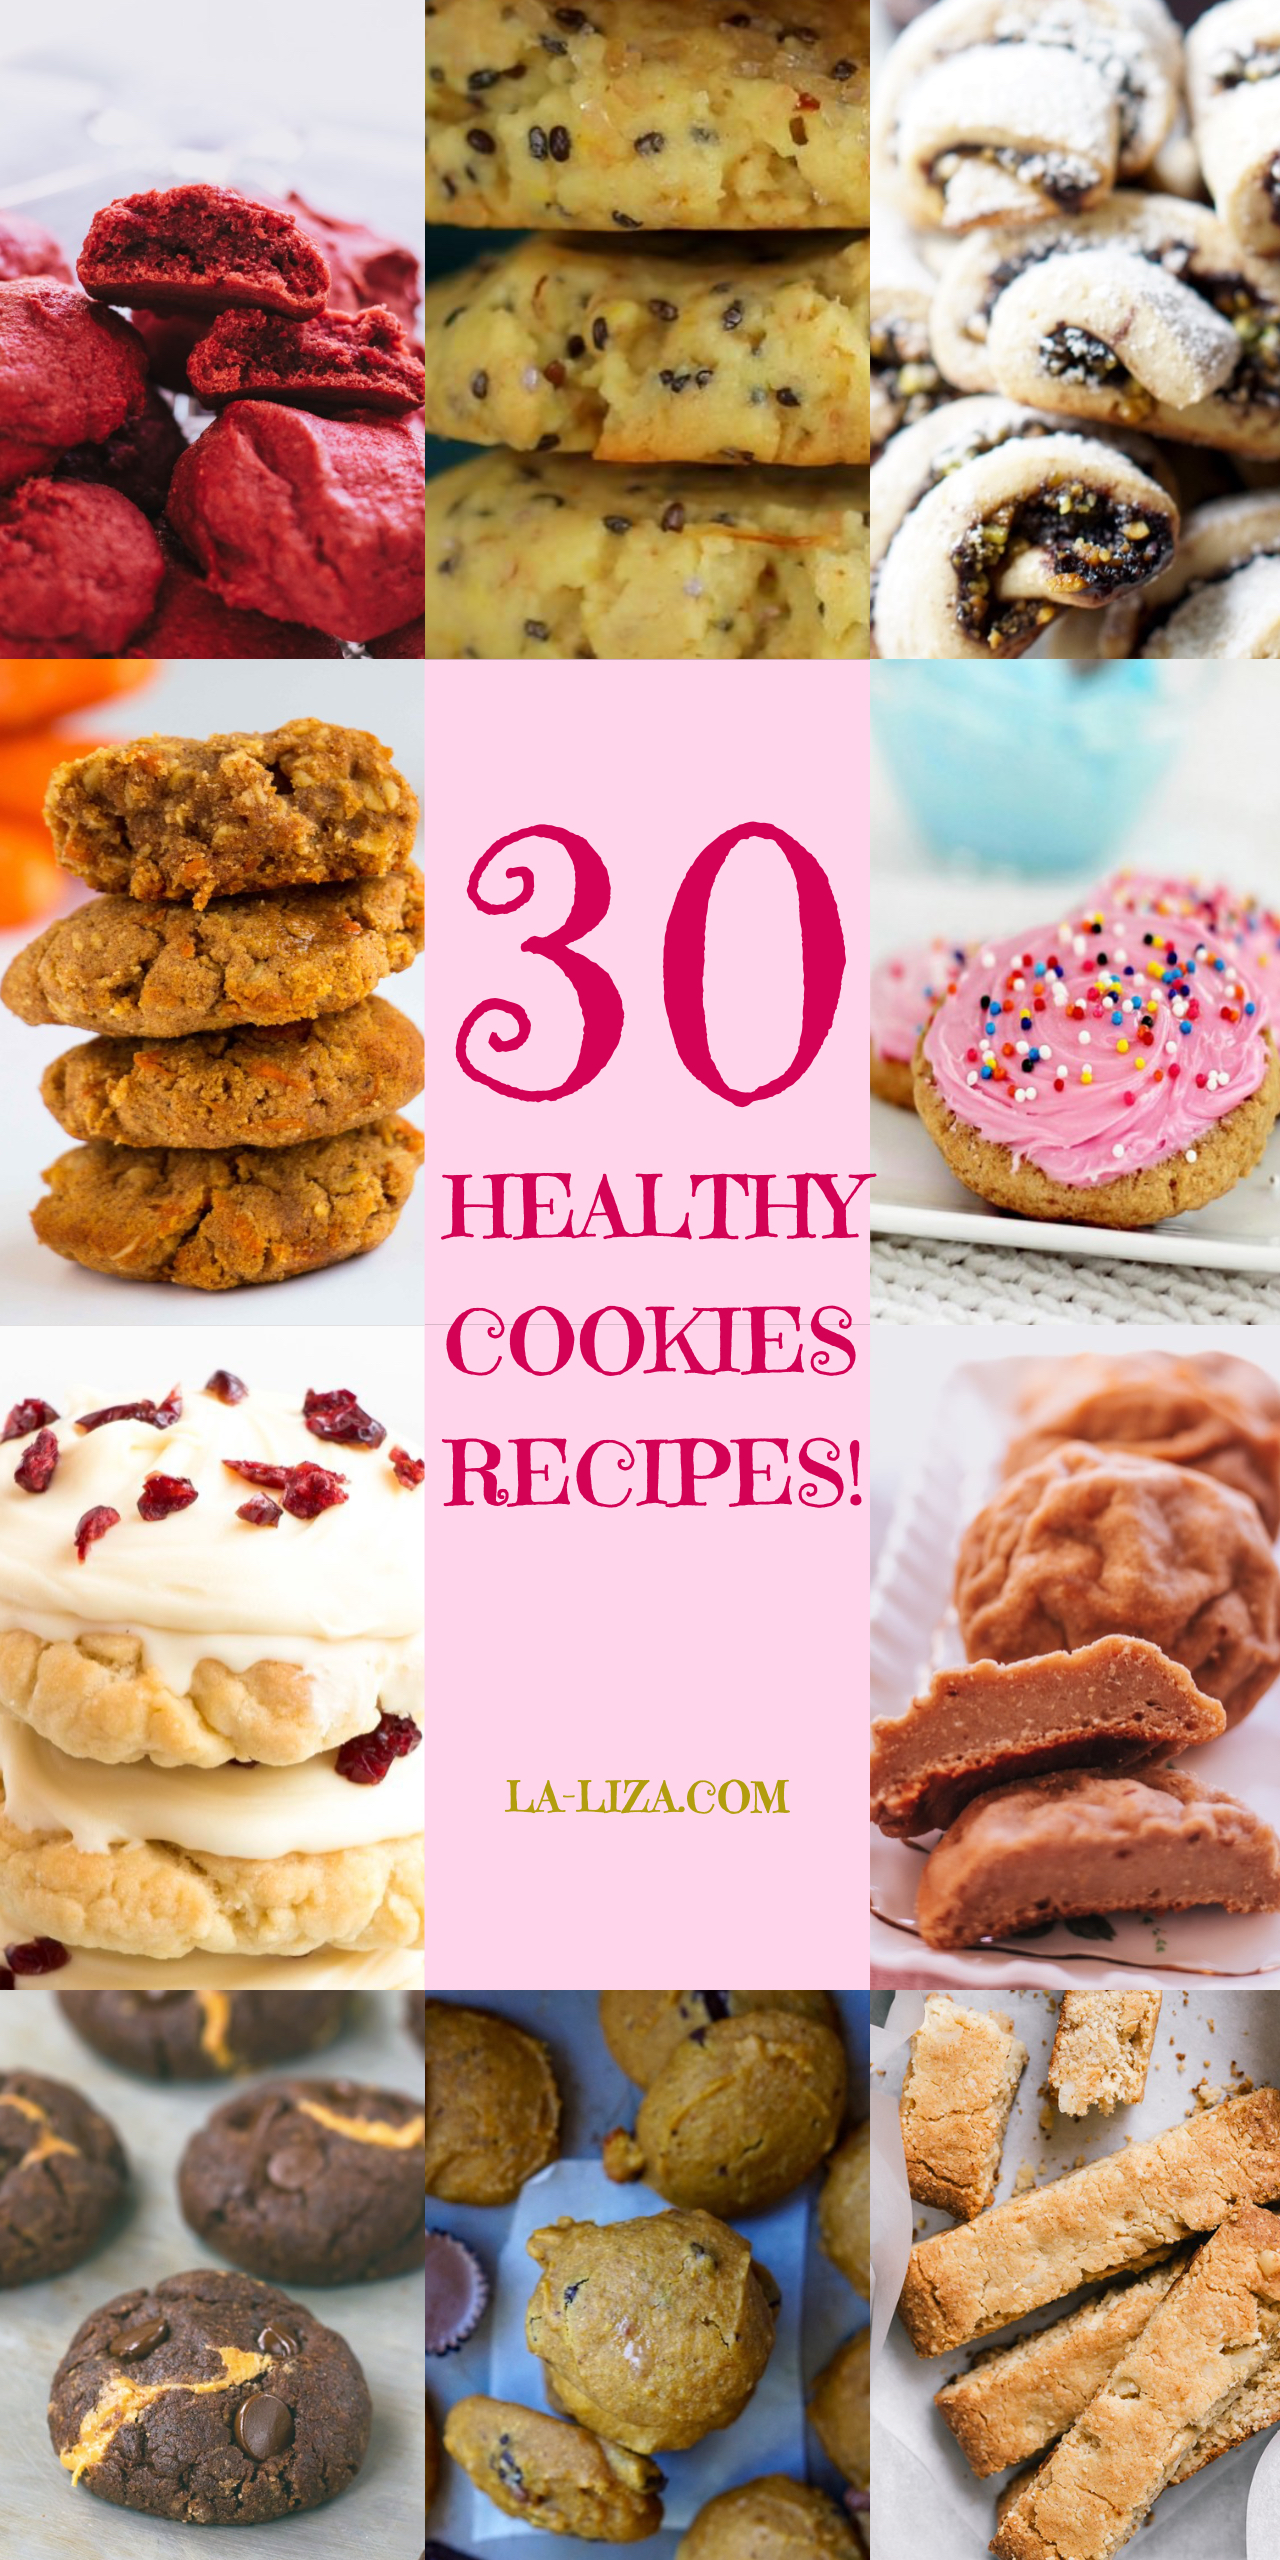 30 Yummiest Healthy Low-Calorie Holiday Cookies Recipes! #LowCalorie #LowCalorieCookies #HealthyCookies #Christmas #ChristmasCookies #HealthyChristmasCookies #HealthyBaking